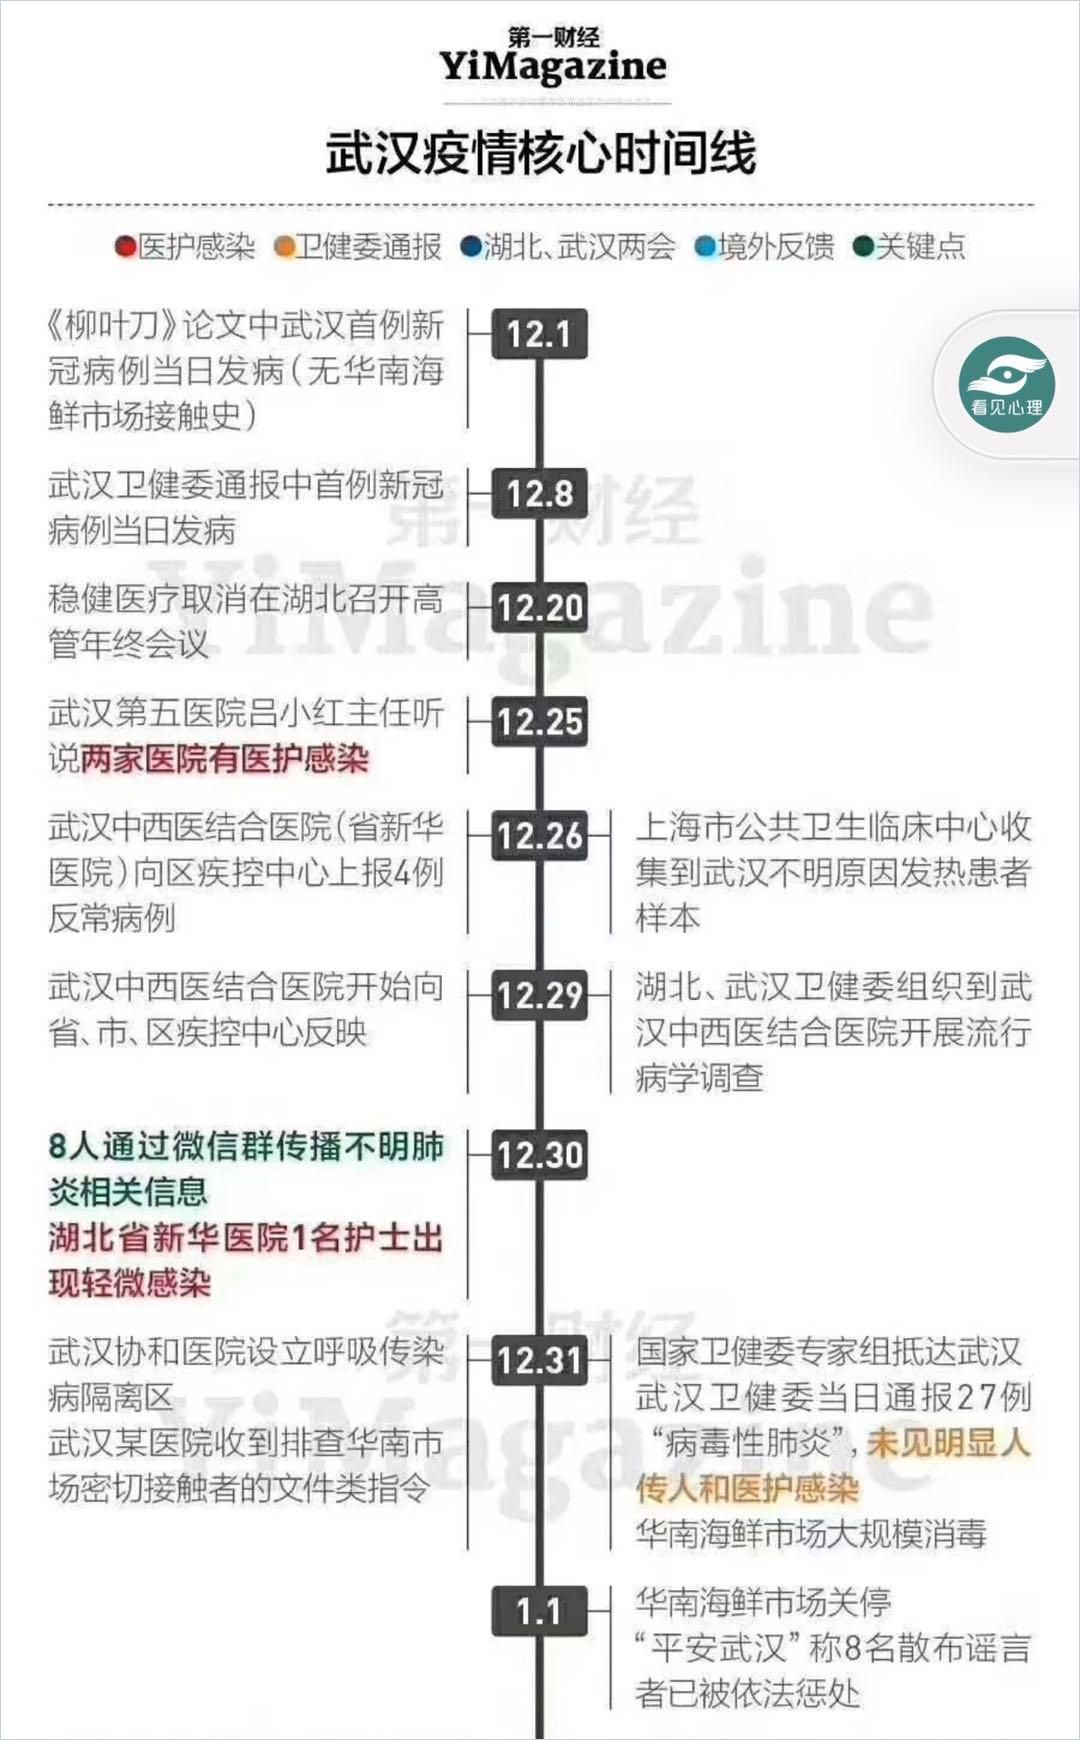 Image of: Coronavirus Timeline Leading Up to Wuhan's Lockdown Shows Clear Signs of Cover-Up